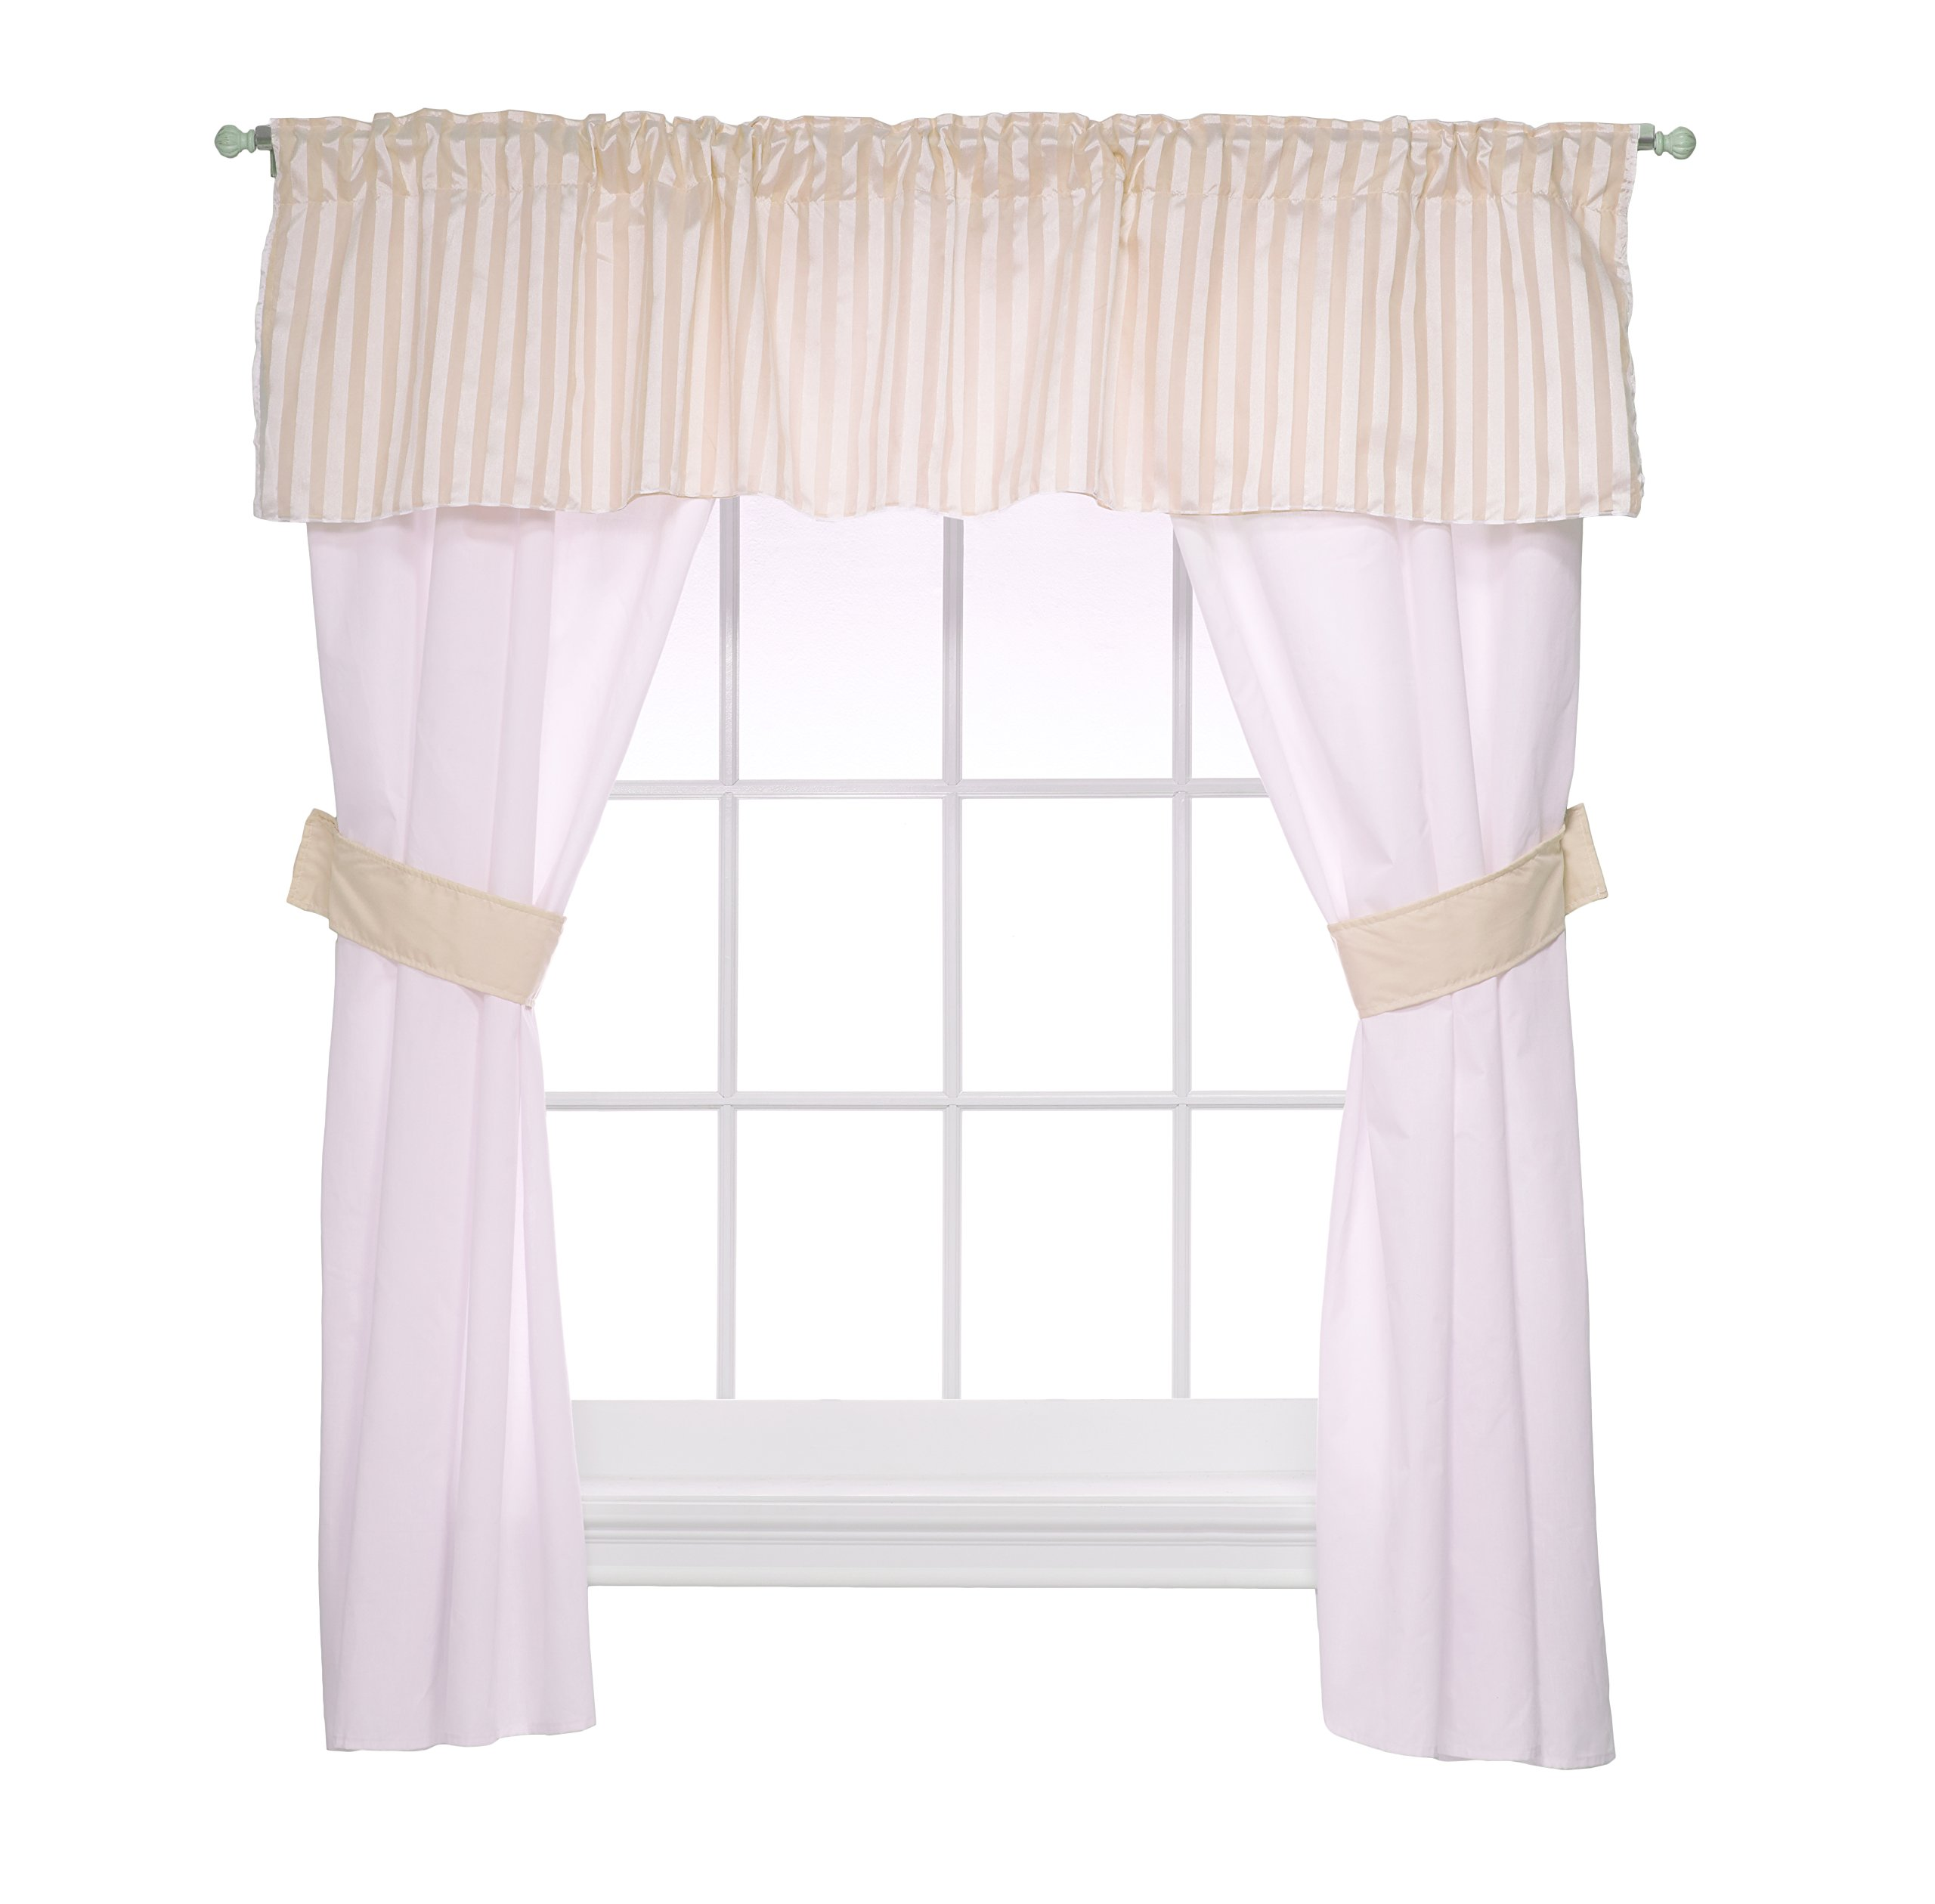 Baby Doll Candyland 5 Piece Window Valance and Curtain Set, Ecru by Baby Doll